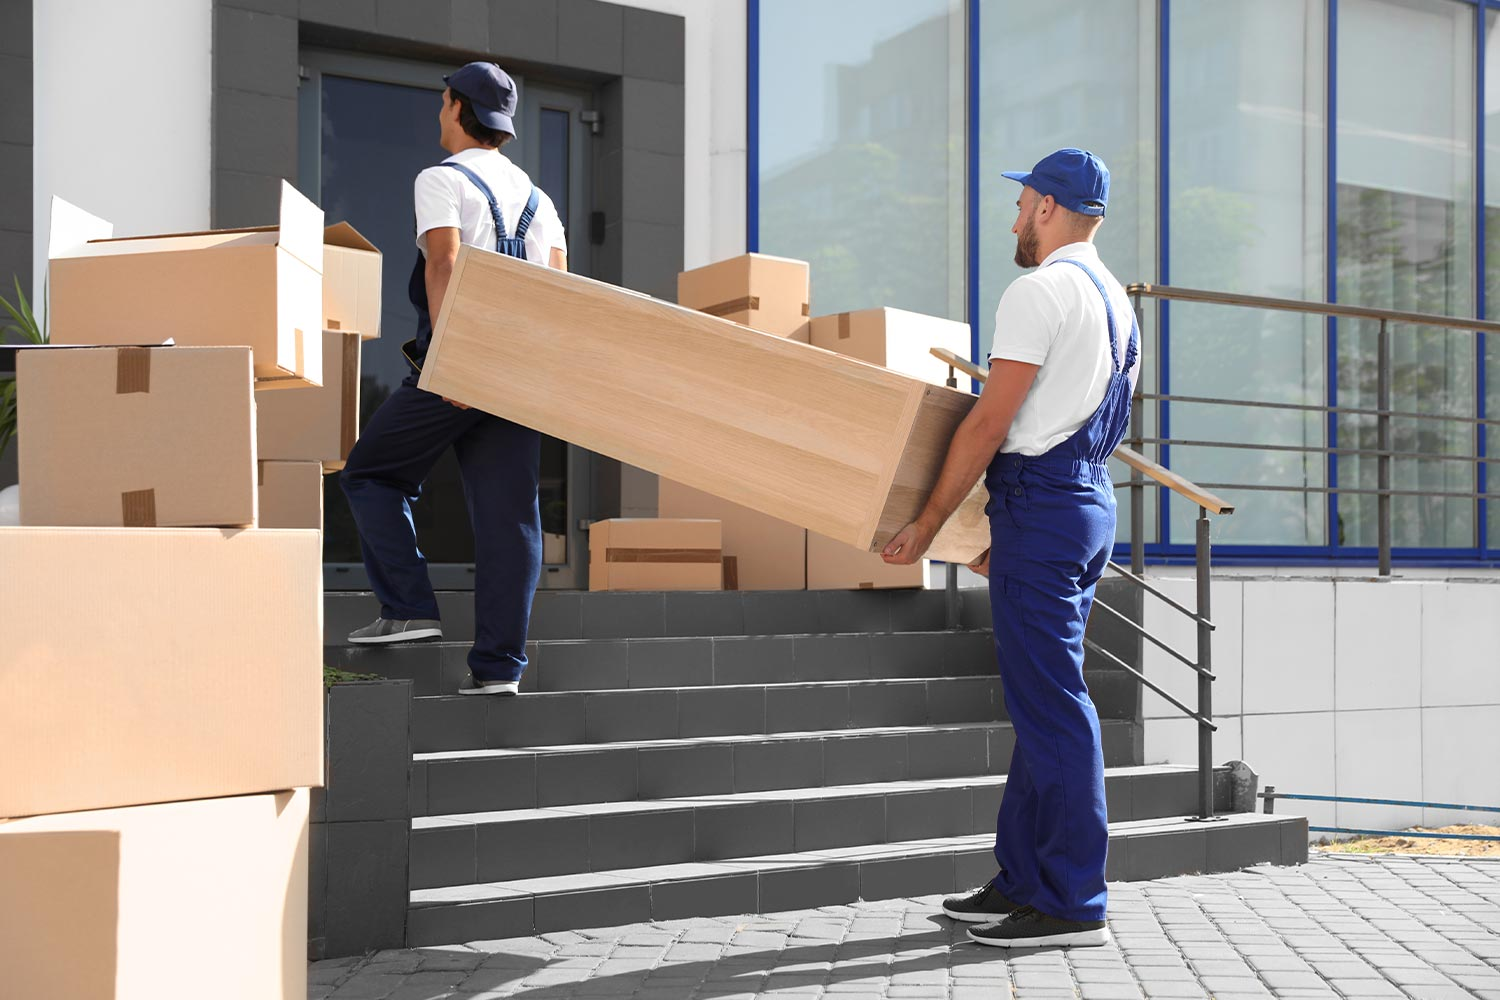 Professional Movers Carrying Heavy Furniture